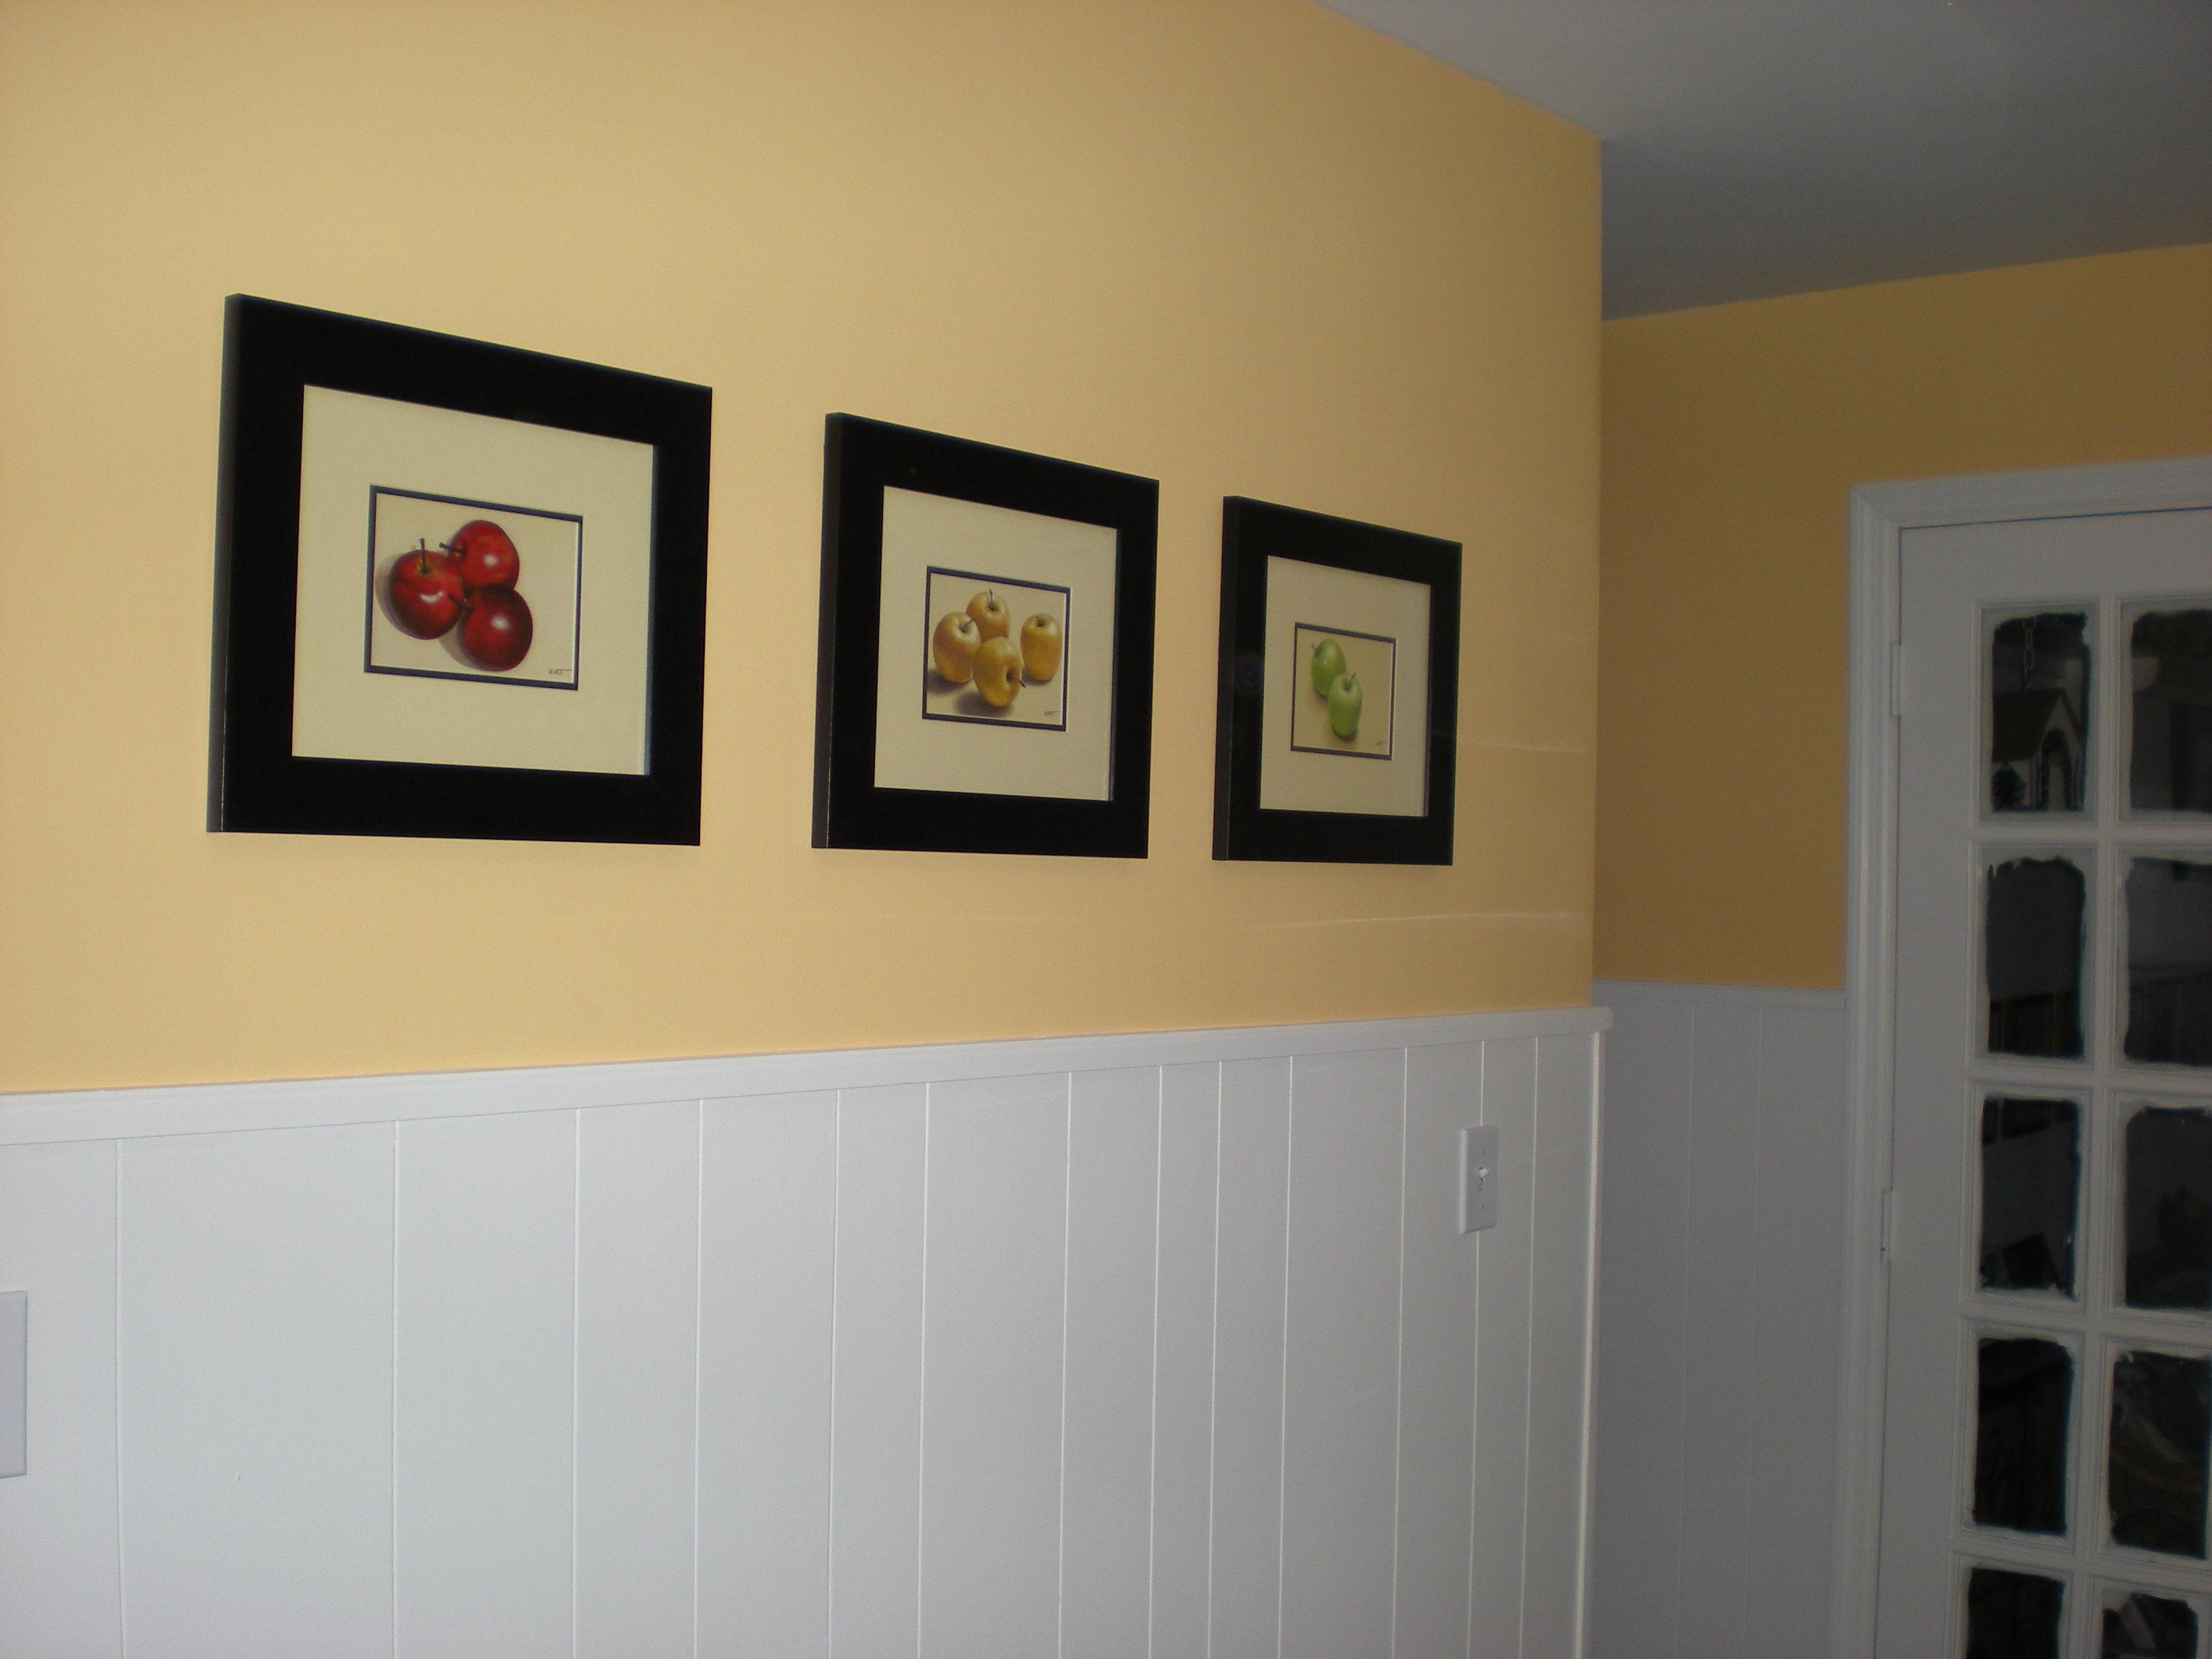 Kitchen : Dining Room Wall Art Artwork For Kitchen Walls Cheap Pertaining To Art For Kitchen Walls (Image 9 of 20)